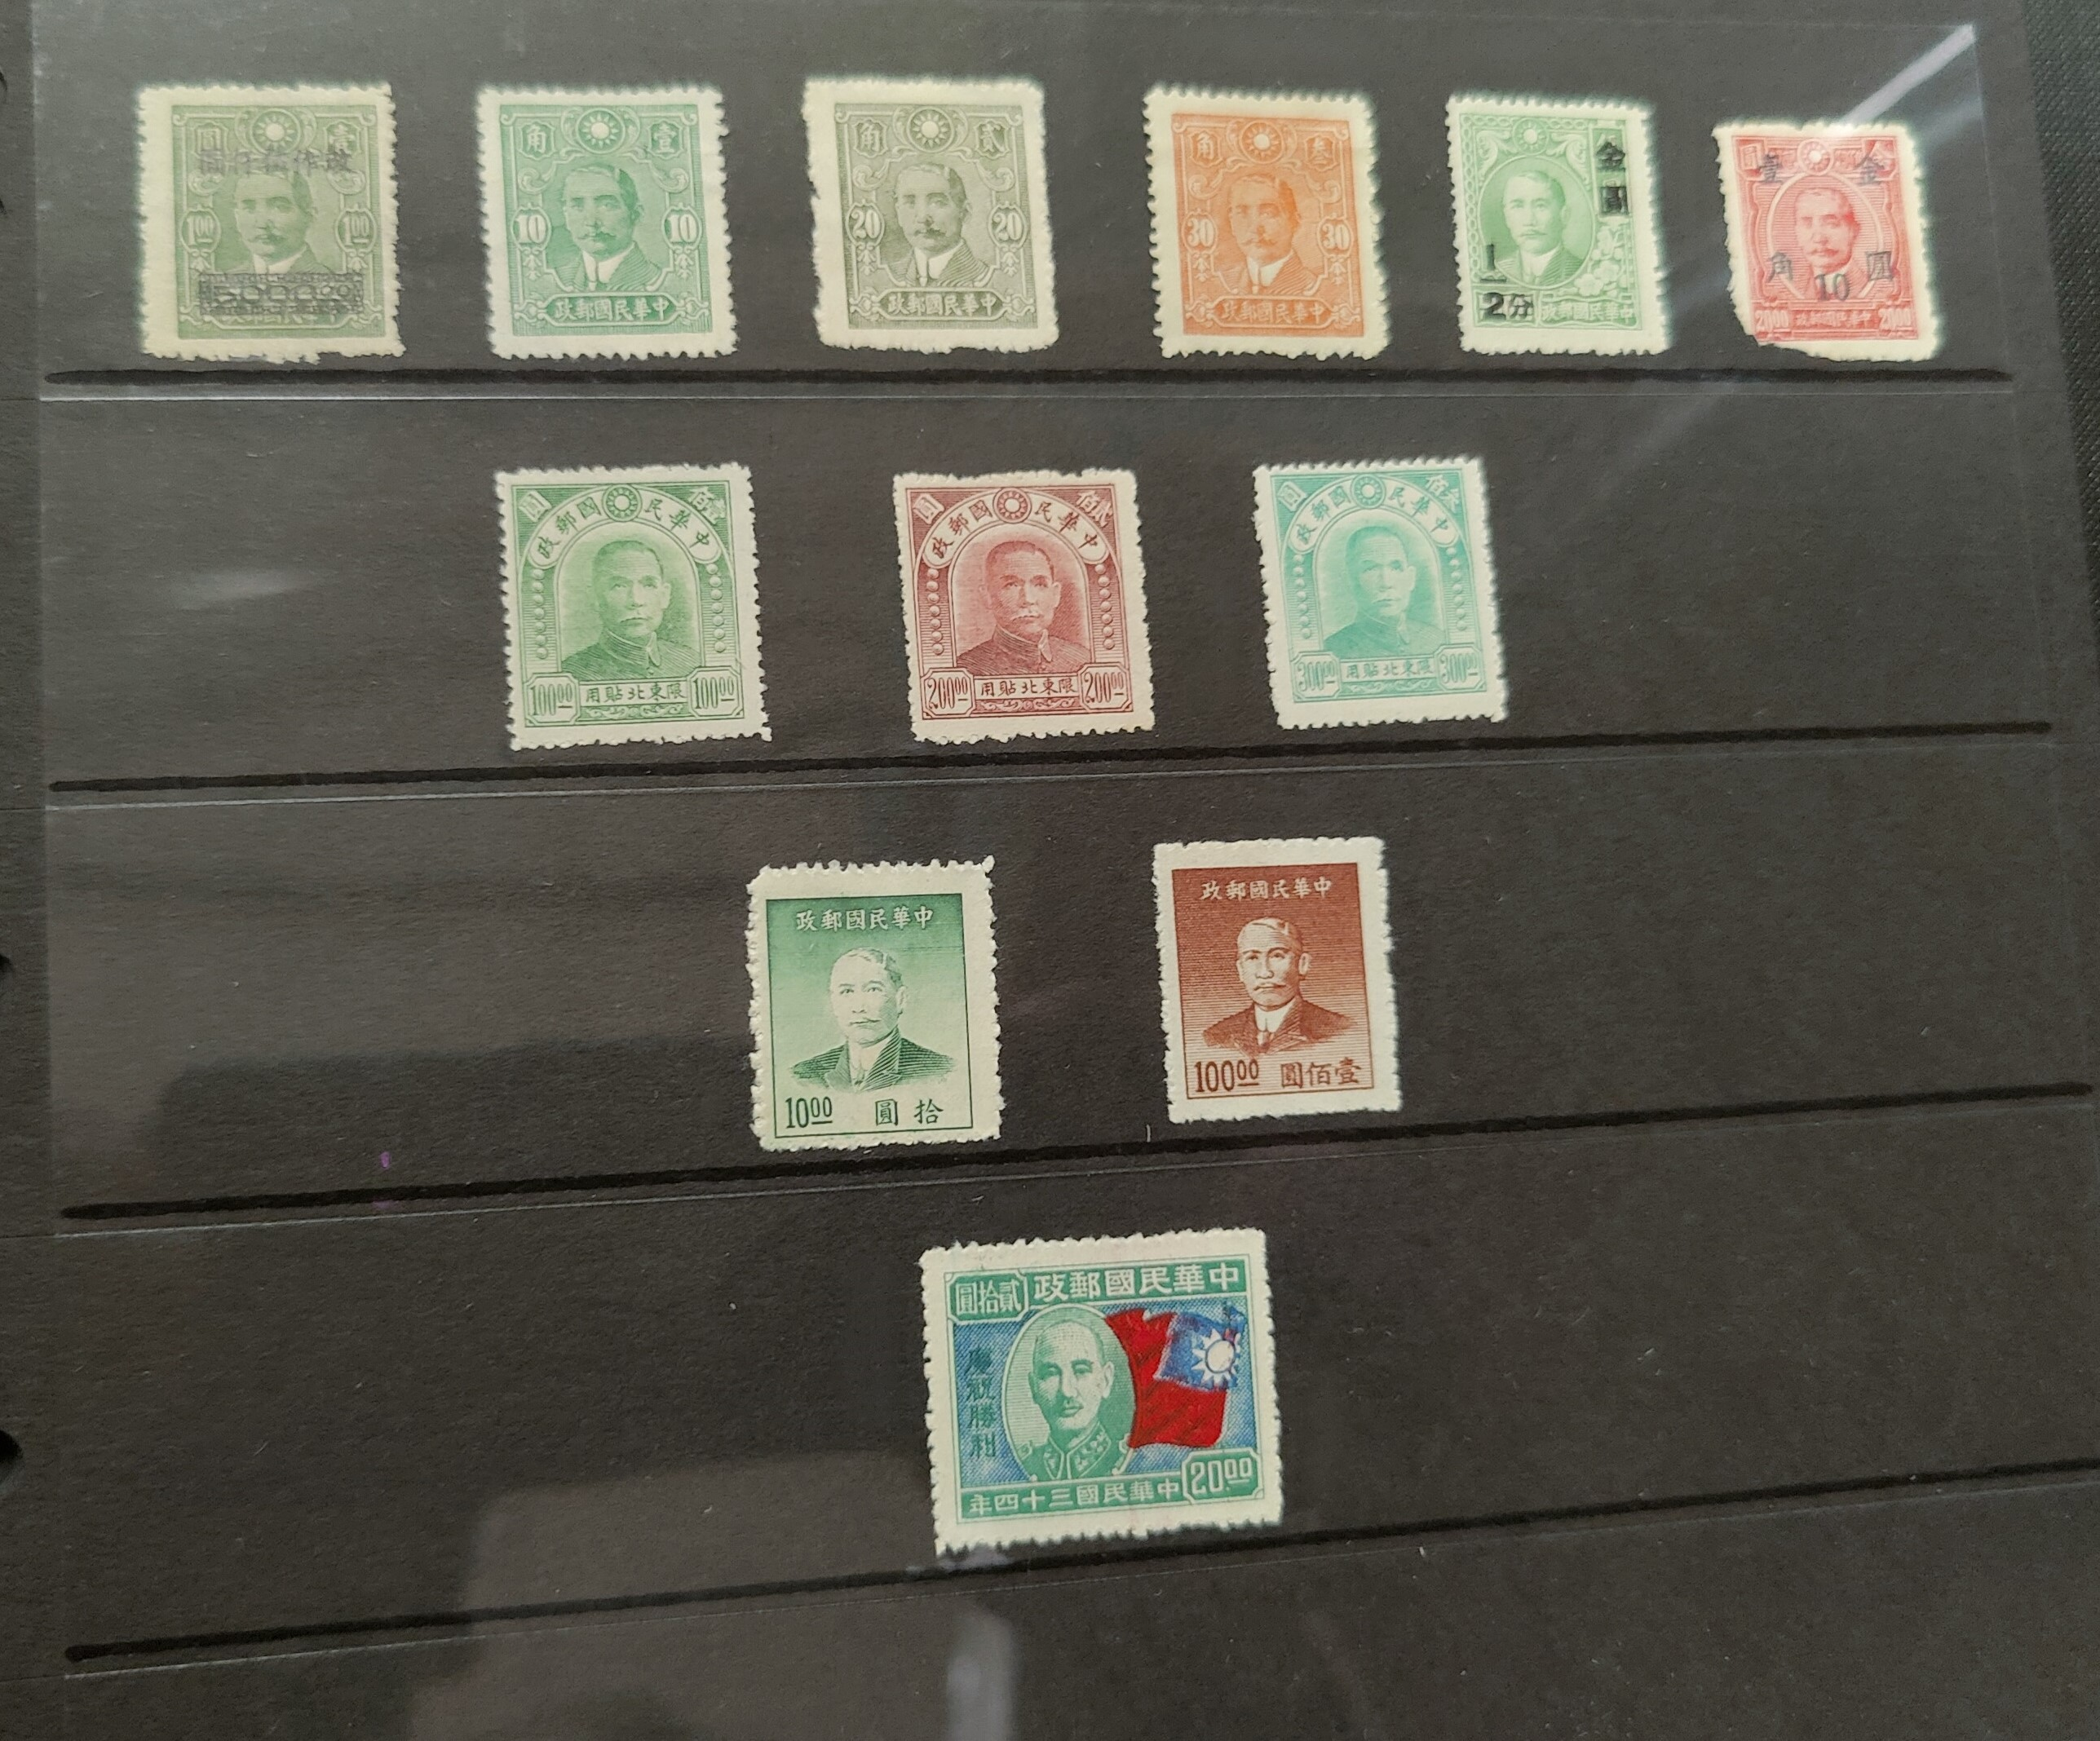 CHINA: a small collection in an album.